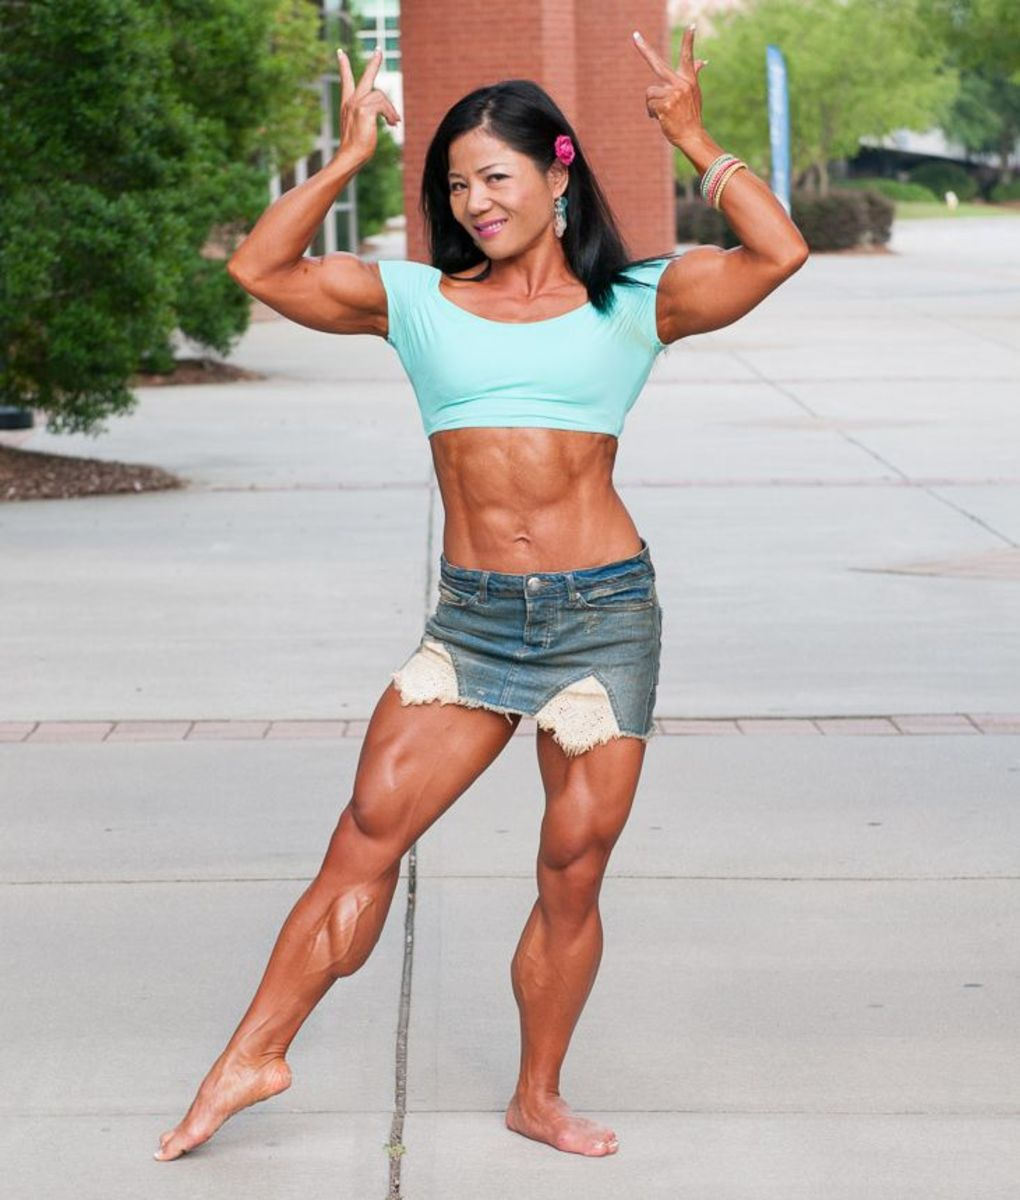 Michelle Jin - Female Bodybuilding